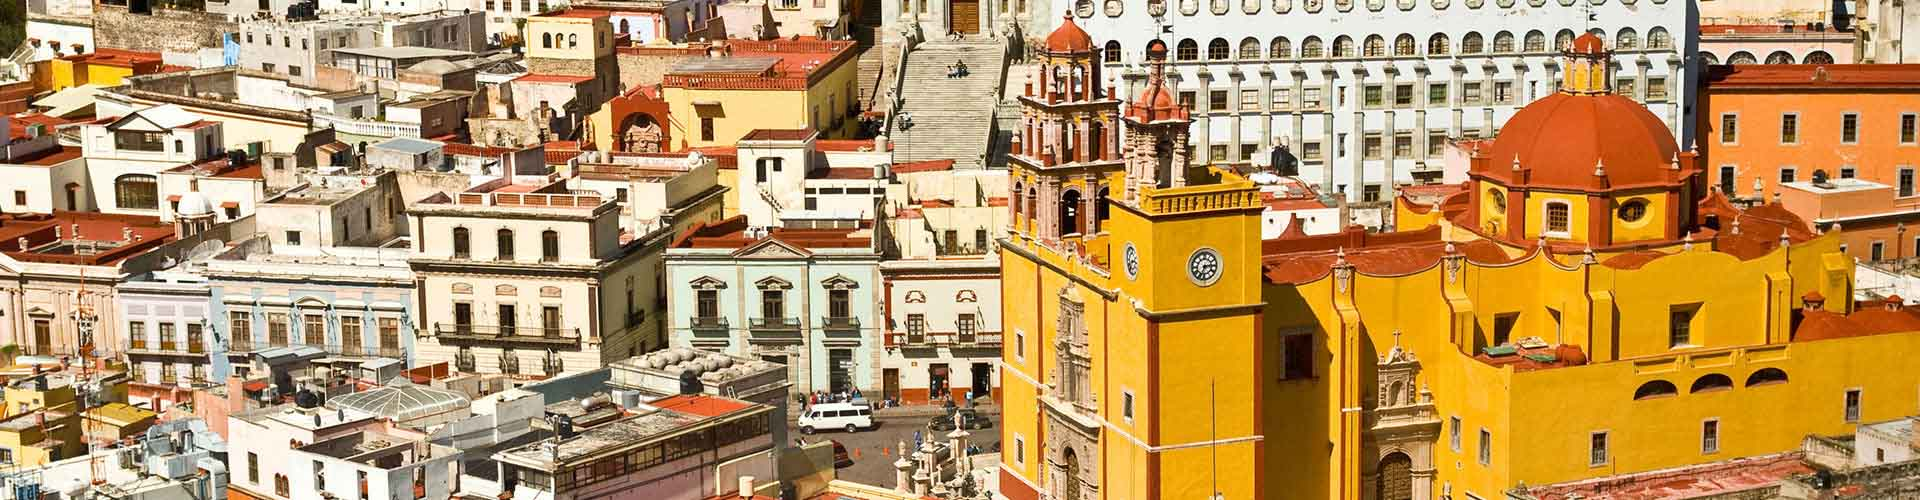 Guanajuato – Hostels in Guanajuato. Maps for Guanajuato, Photos and Reviews for each hostel in Guanajuato.